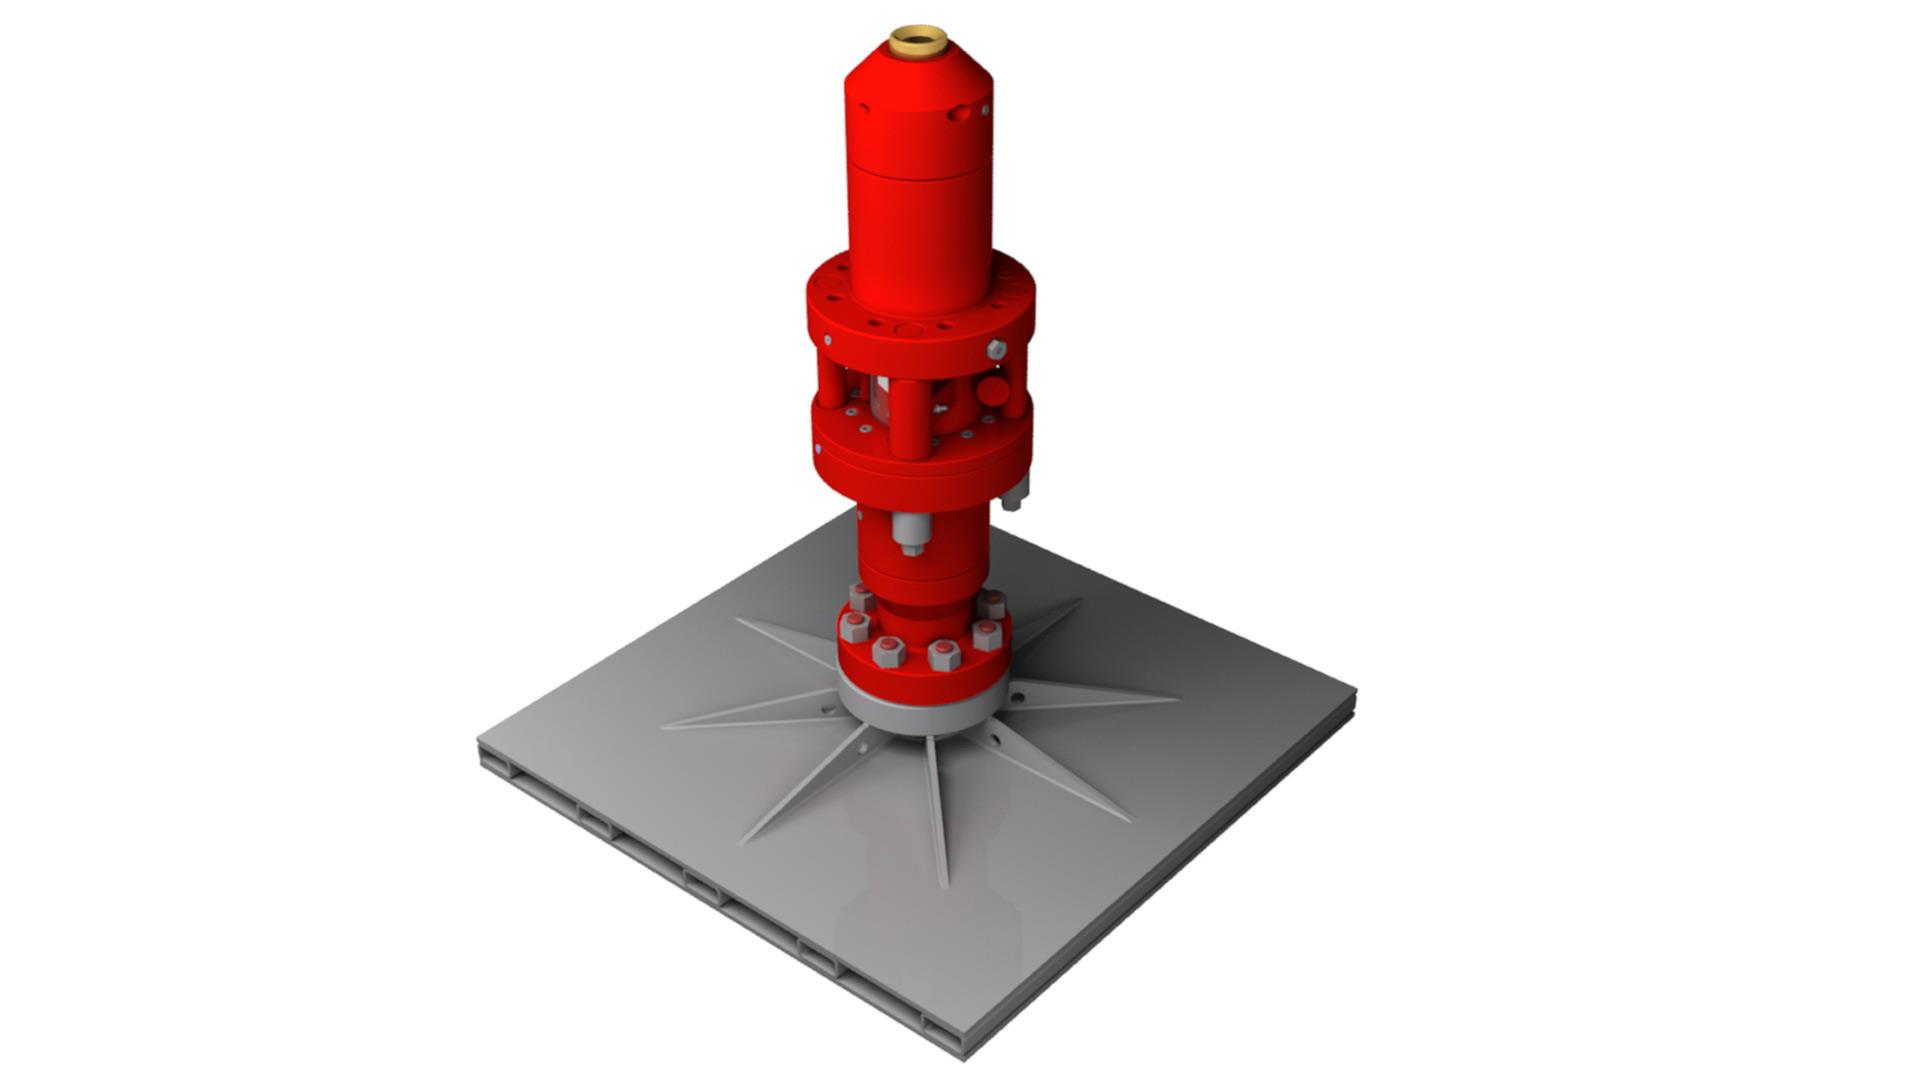 Render of Texas Oil Tools Over/Under Stripper Packer